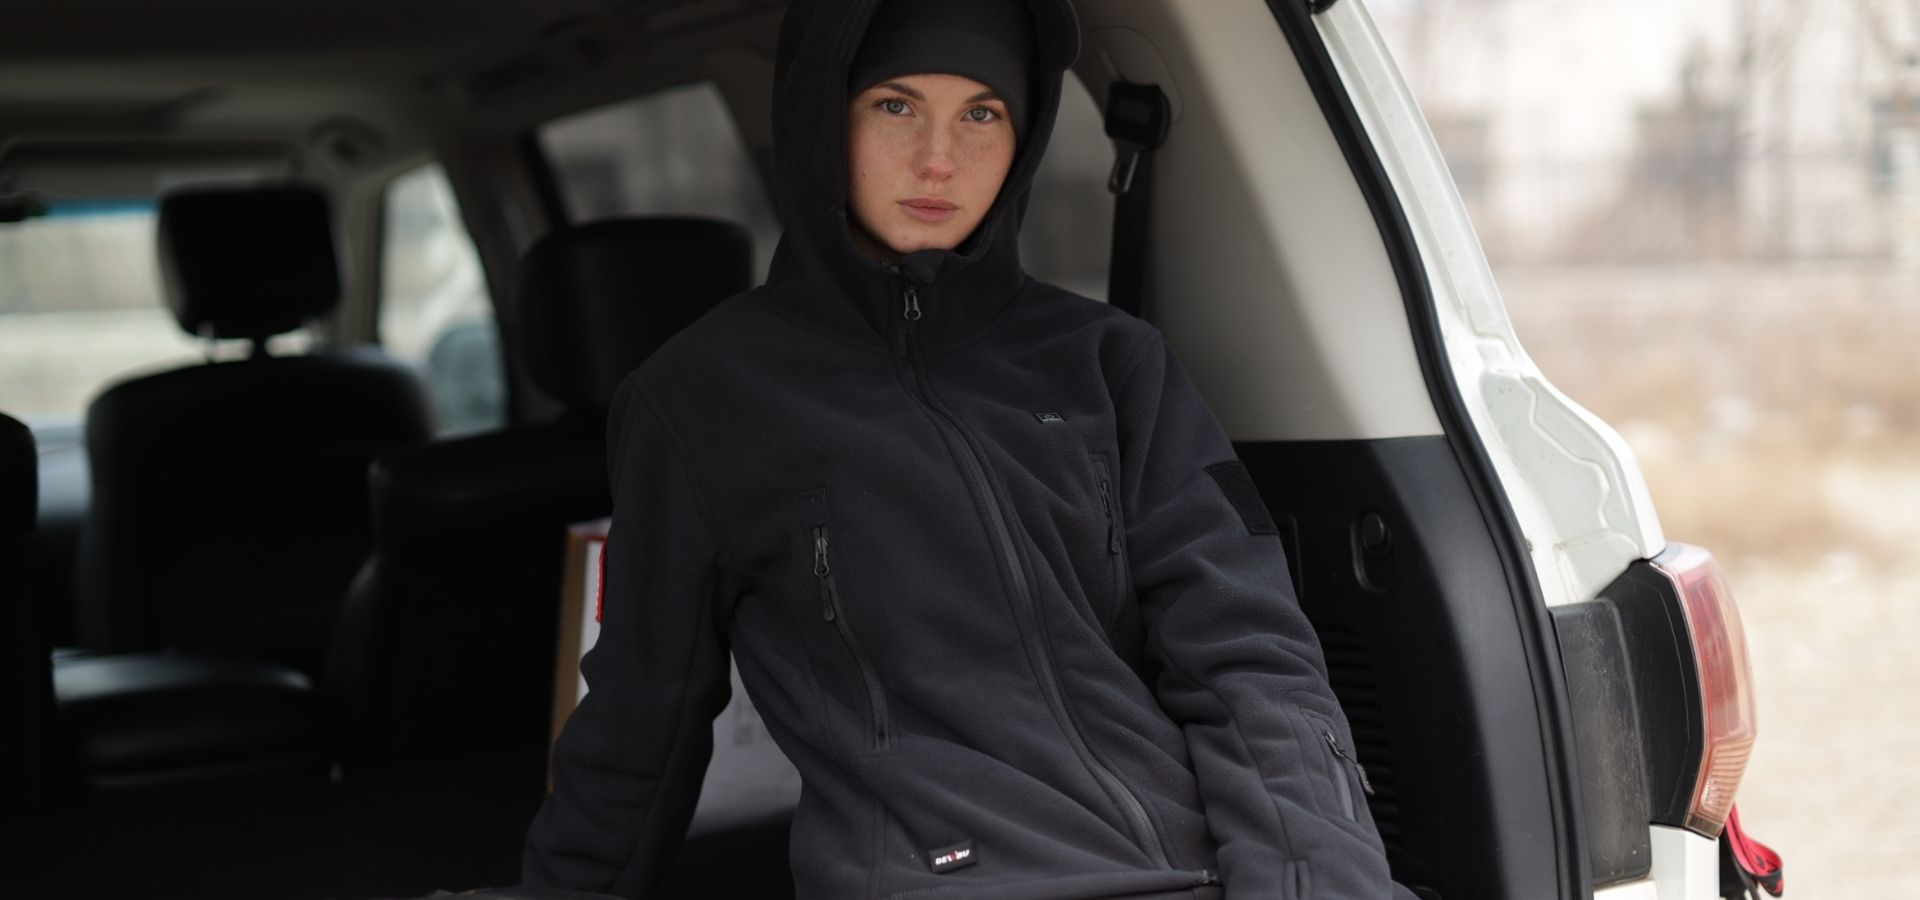 Heated Apparel For Men